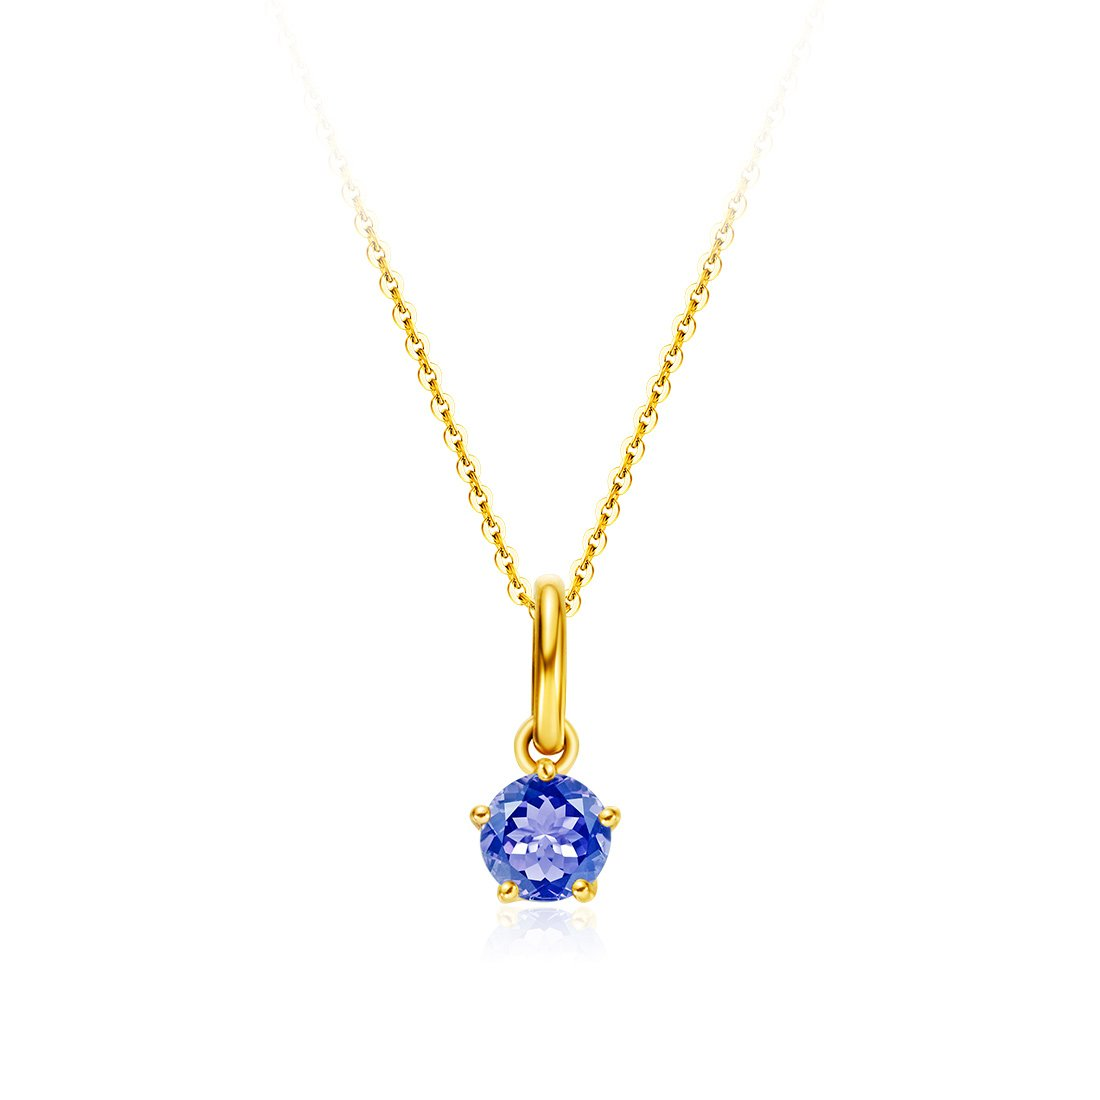 18 inch Carleen Solid 18K Yellow Gold Solitaire Genuine Gemstone Delicate Dainty Birthstone Necklace Pendant Fine Jewelry Birthday Gifts for Women Girls